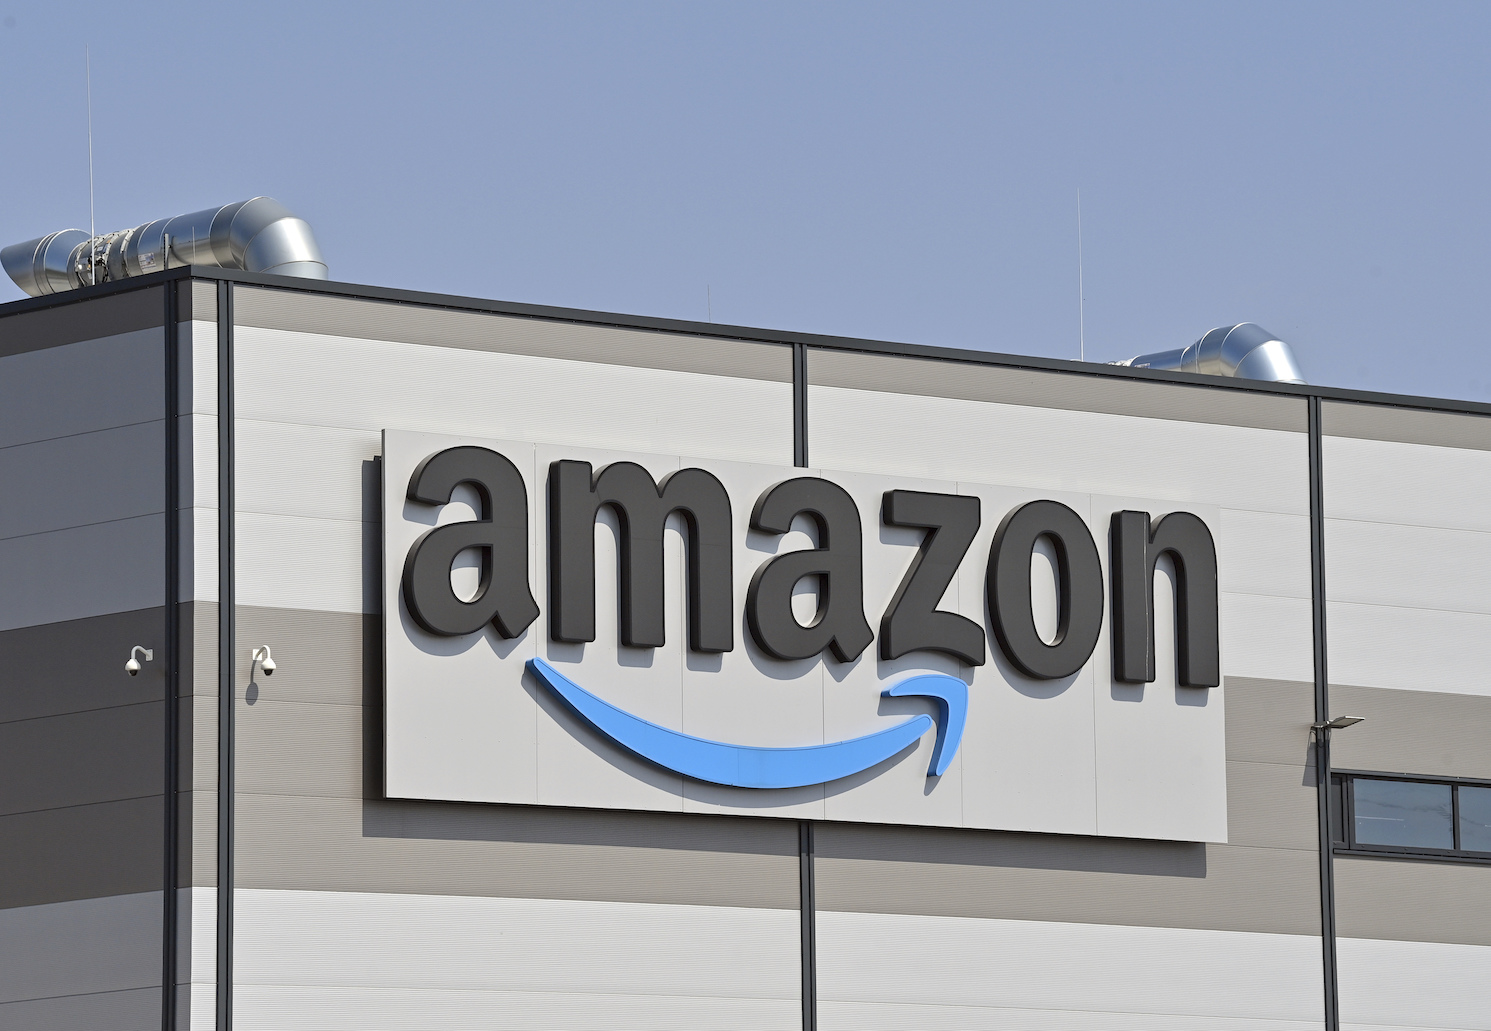 House lawmakers may pass a bill that could force Amazon to split into two companies or offload its private-label brands, the WSJ says.